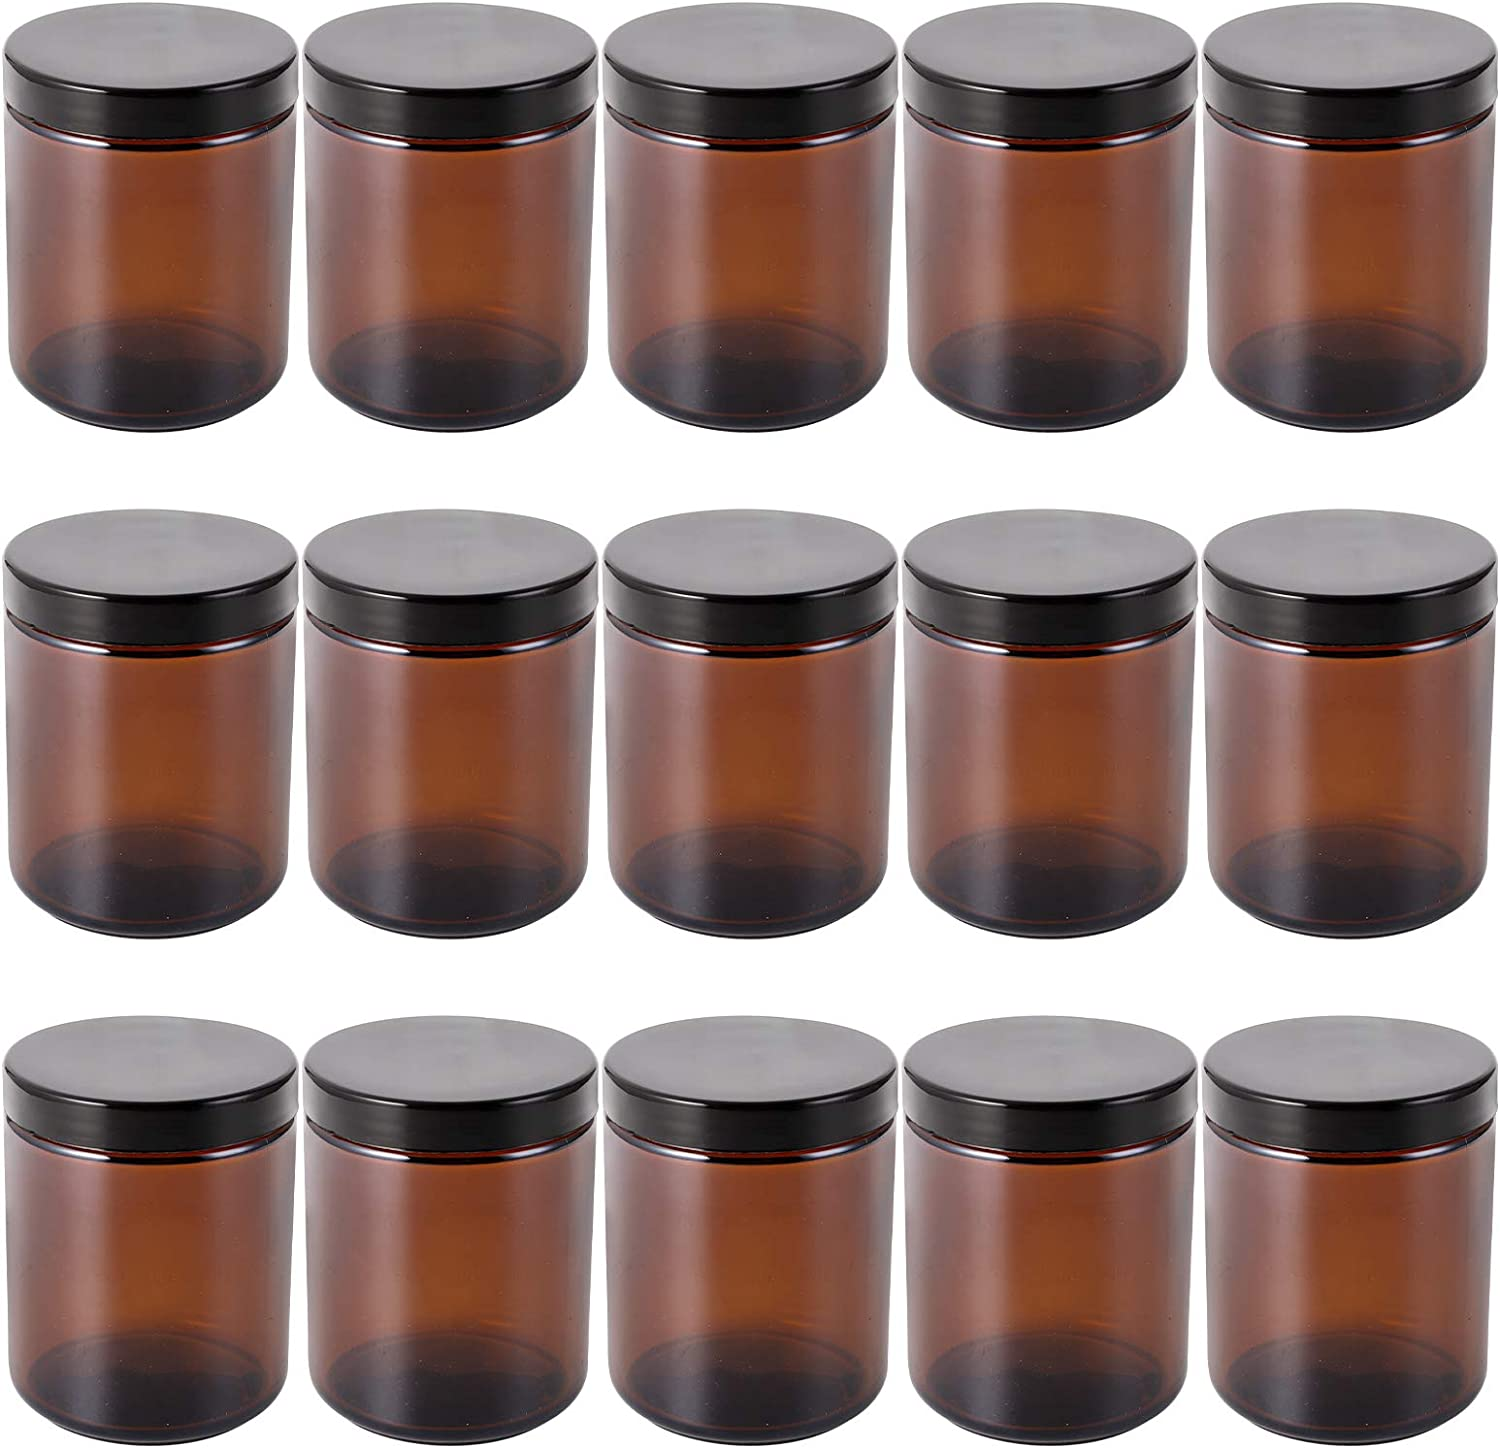 Bekith 15 Pack 8 ounce Round Glass Jars with Black Plastic Airtight Lids and White Inner Liners, Empty Candle Jar, Food Storage Containers for Spice, Round Cosmetic Containers for Lotion Cream, Amber